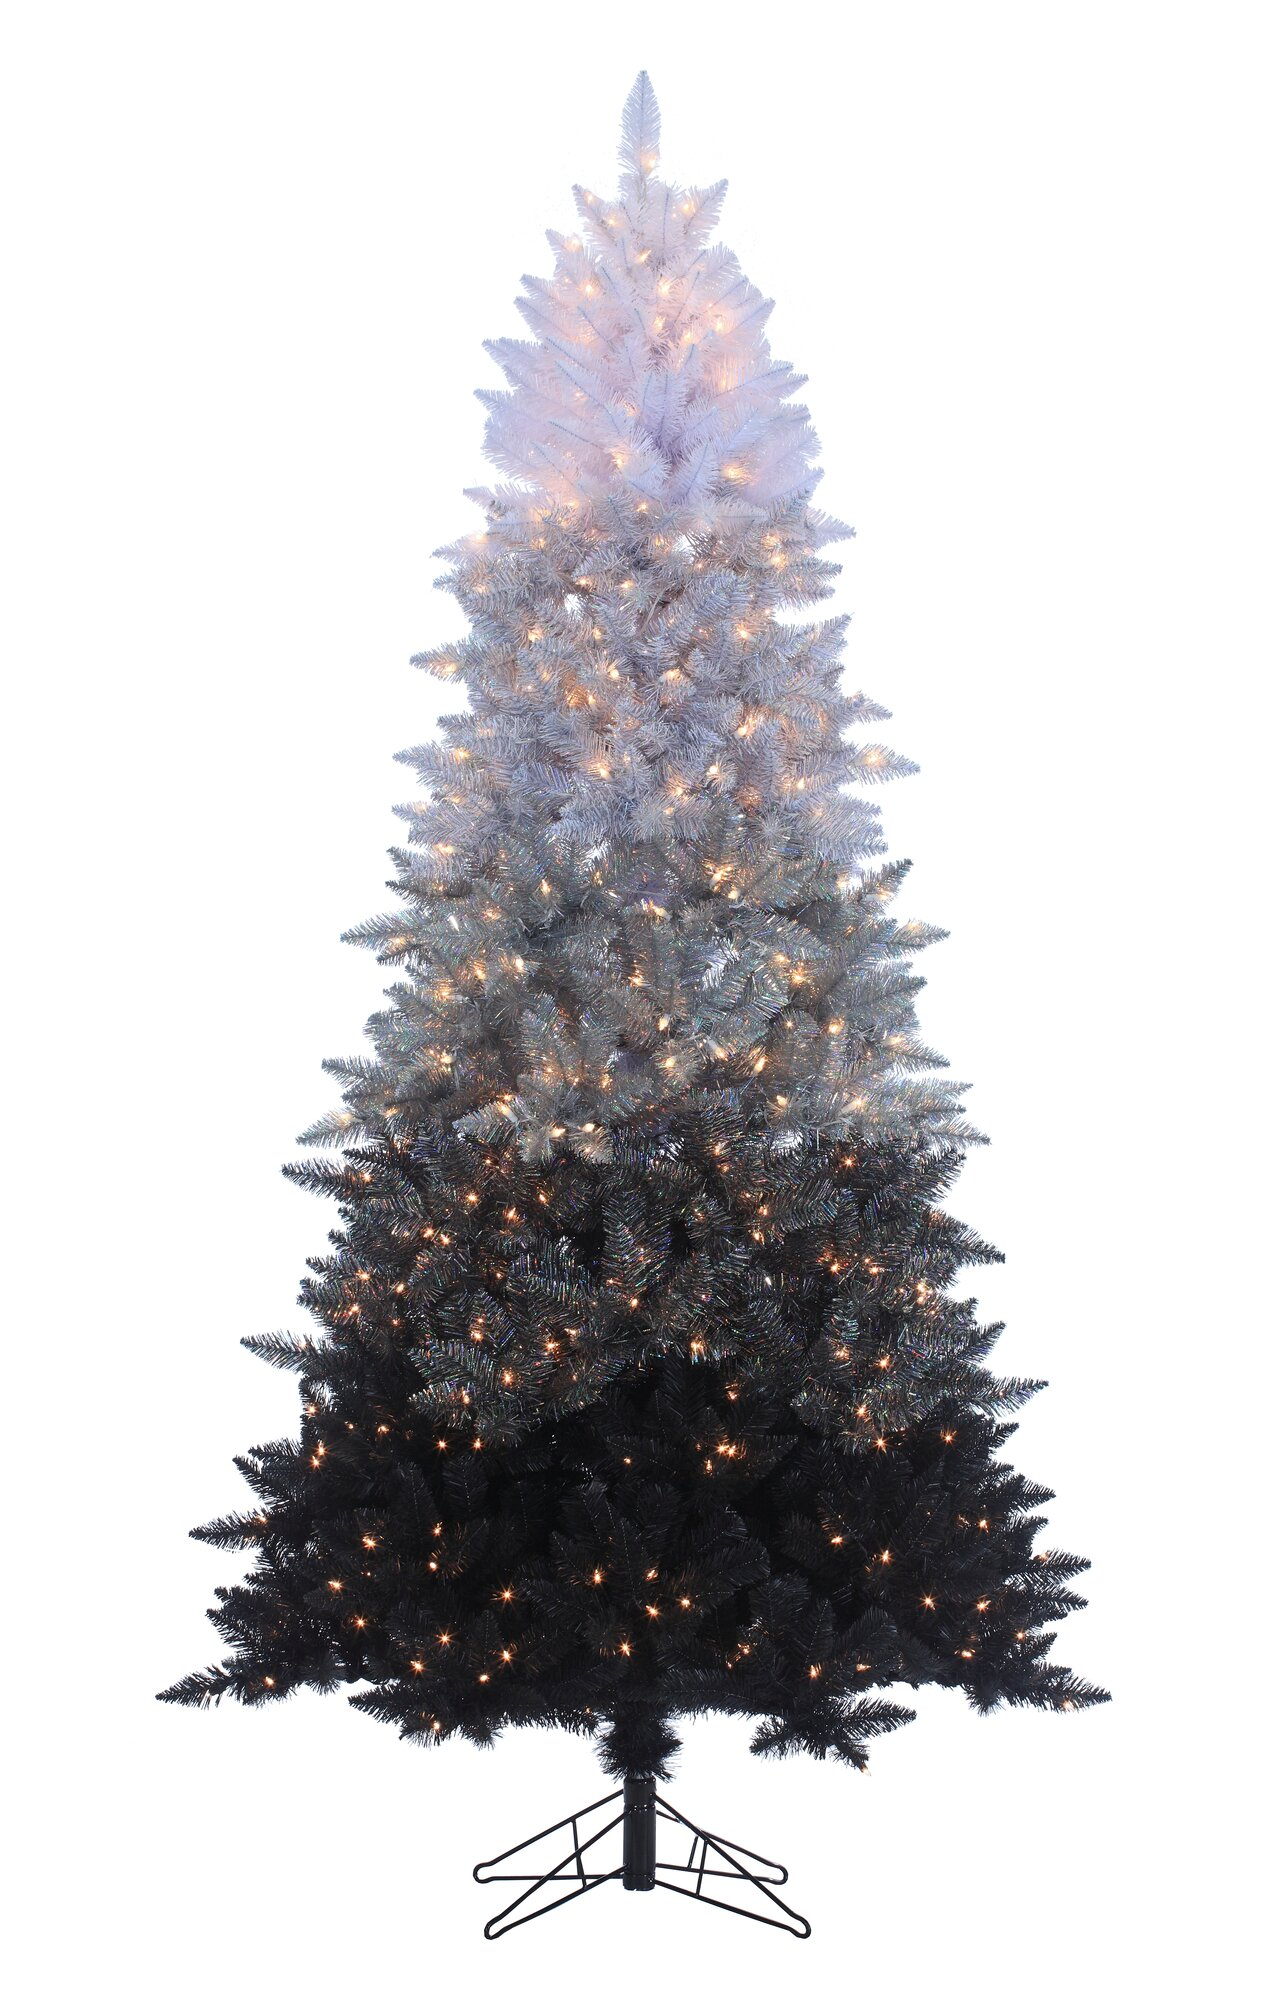 7 5 39 Vintage Black Ombre Spruce Christmas Tree With 600